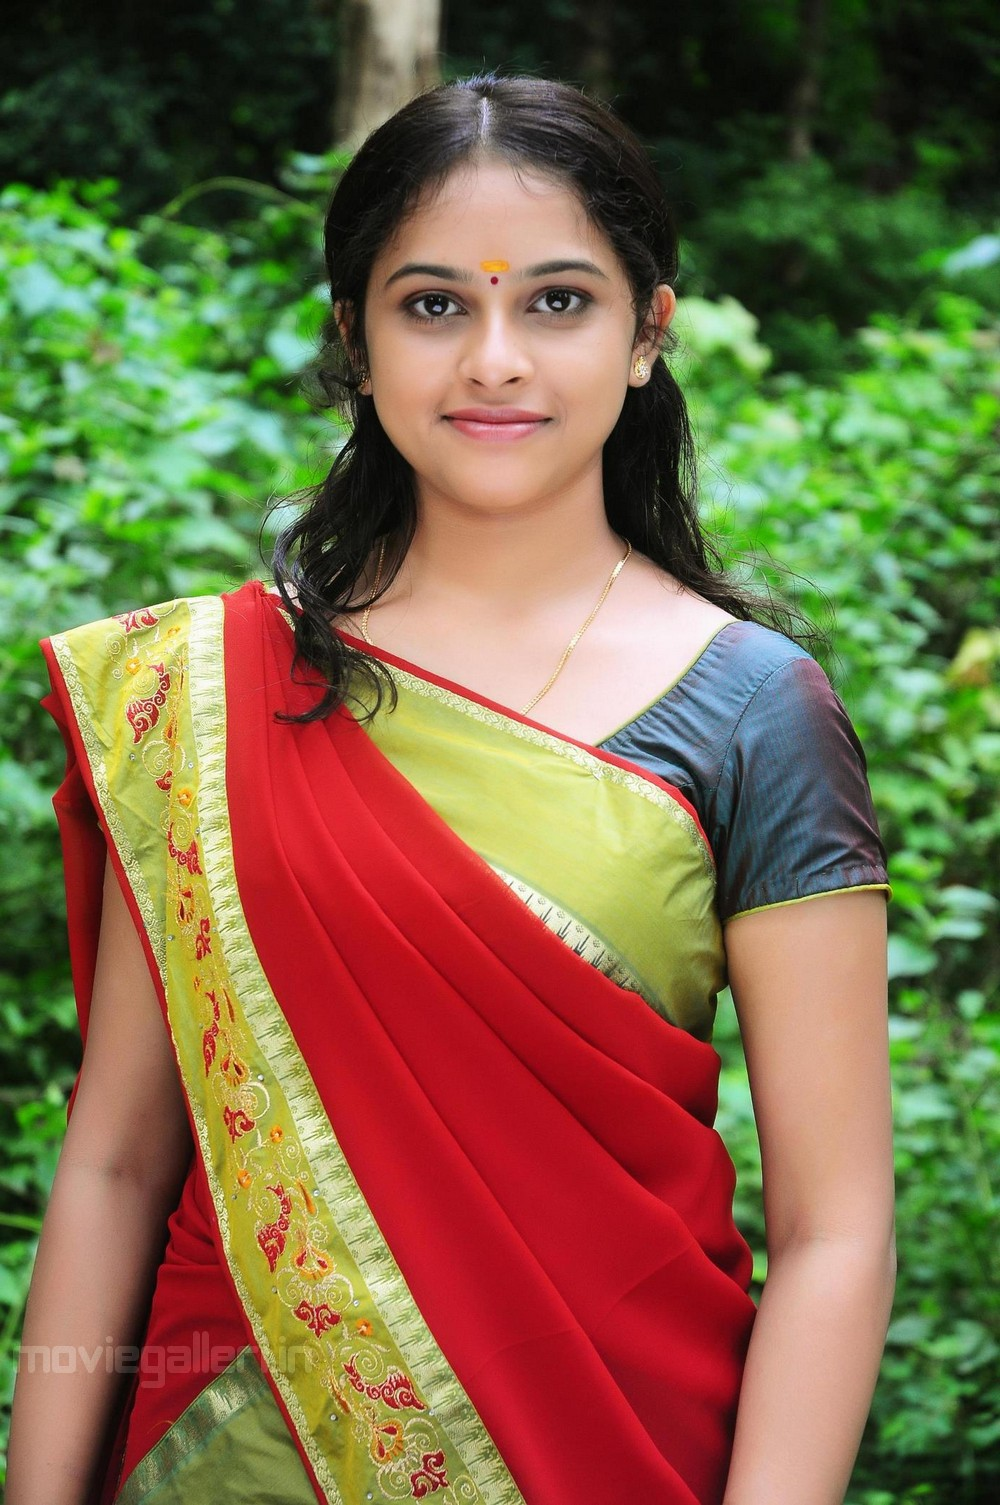 Telugu Actress Sri Divya in Saree Stills.